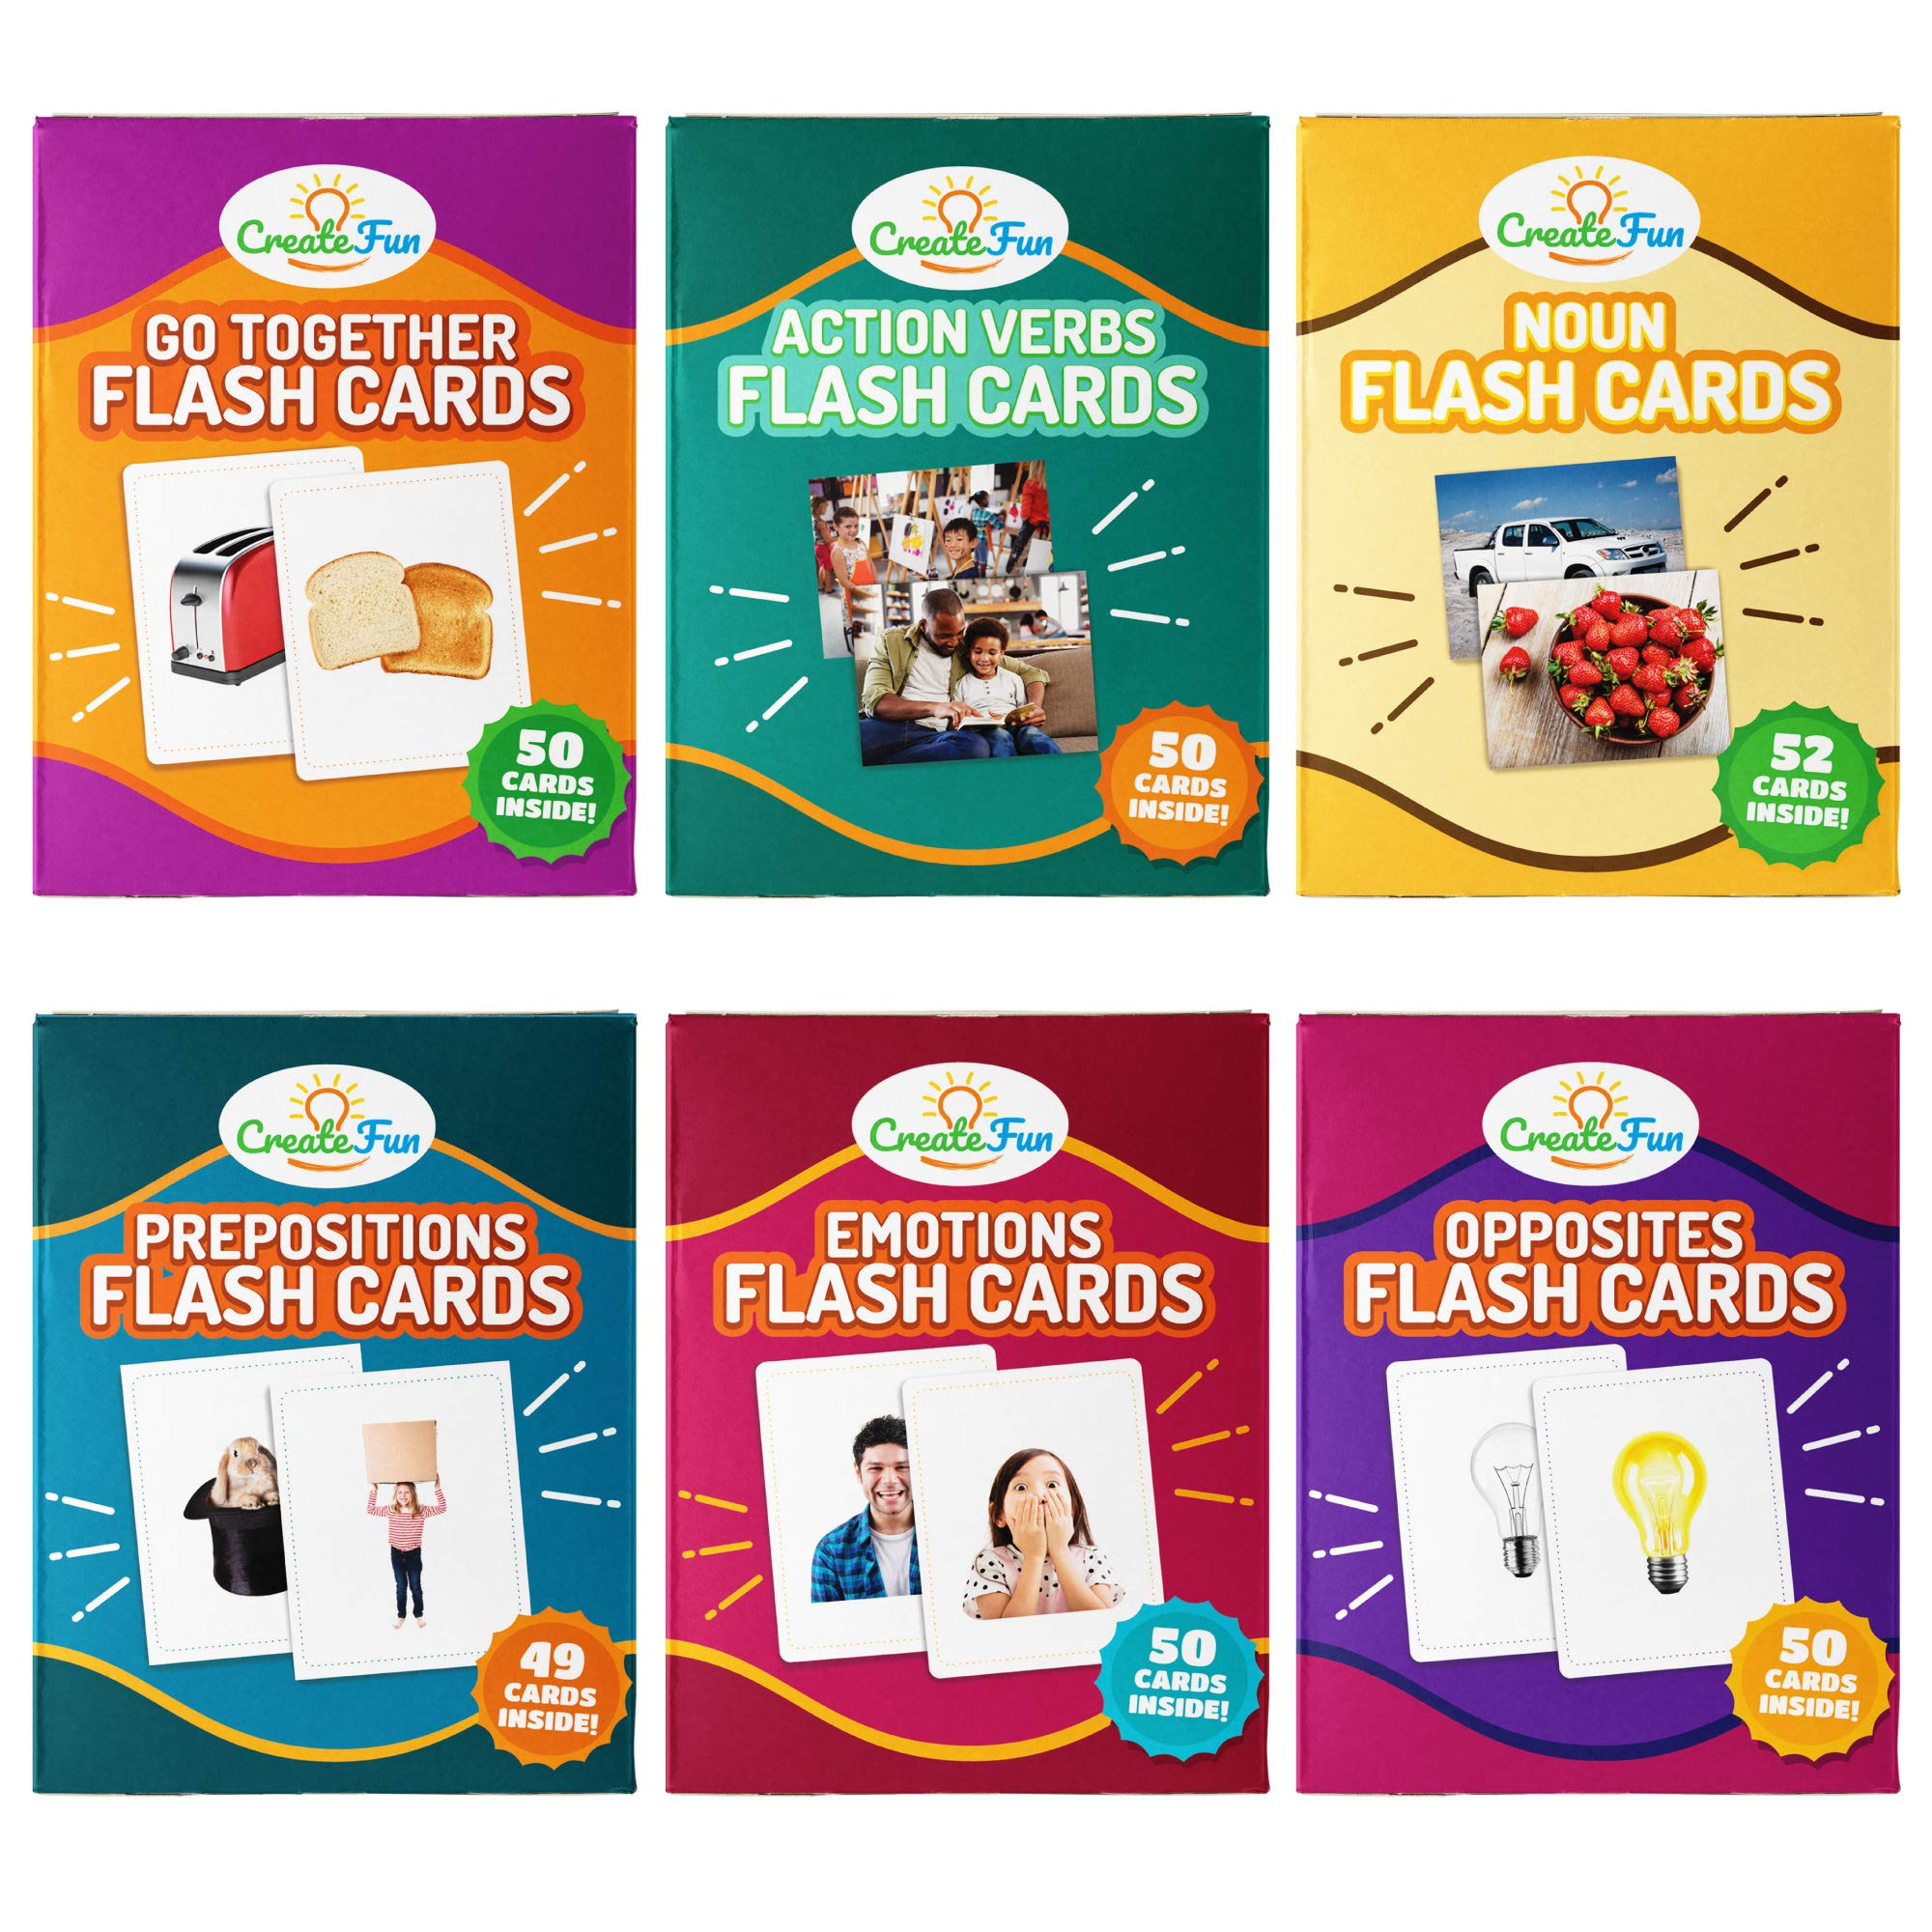 CreateFun Vocabulary Builder Flash Cards 6 Pack | 299 Educational Photo Cards with Learning Games | Includes Emotions, Go Togethers, Nouns, Opposites, Prepositions, Verbs | for Home and Speech Therapy by CreateFun